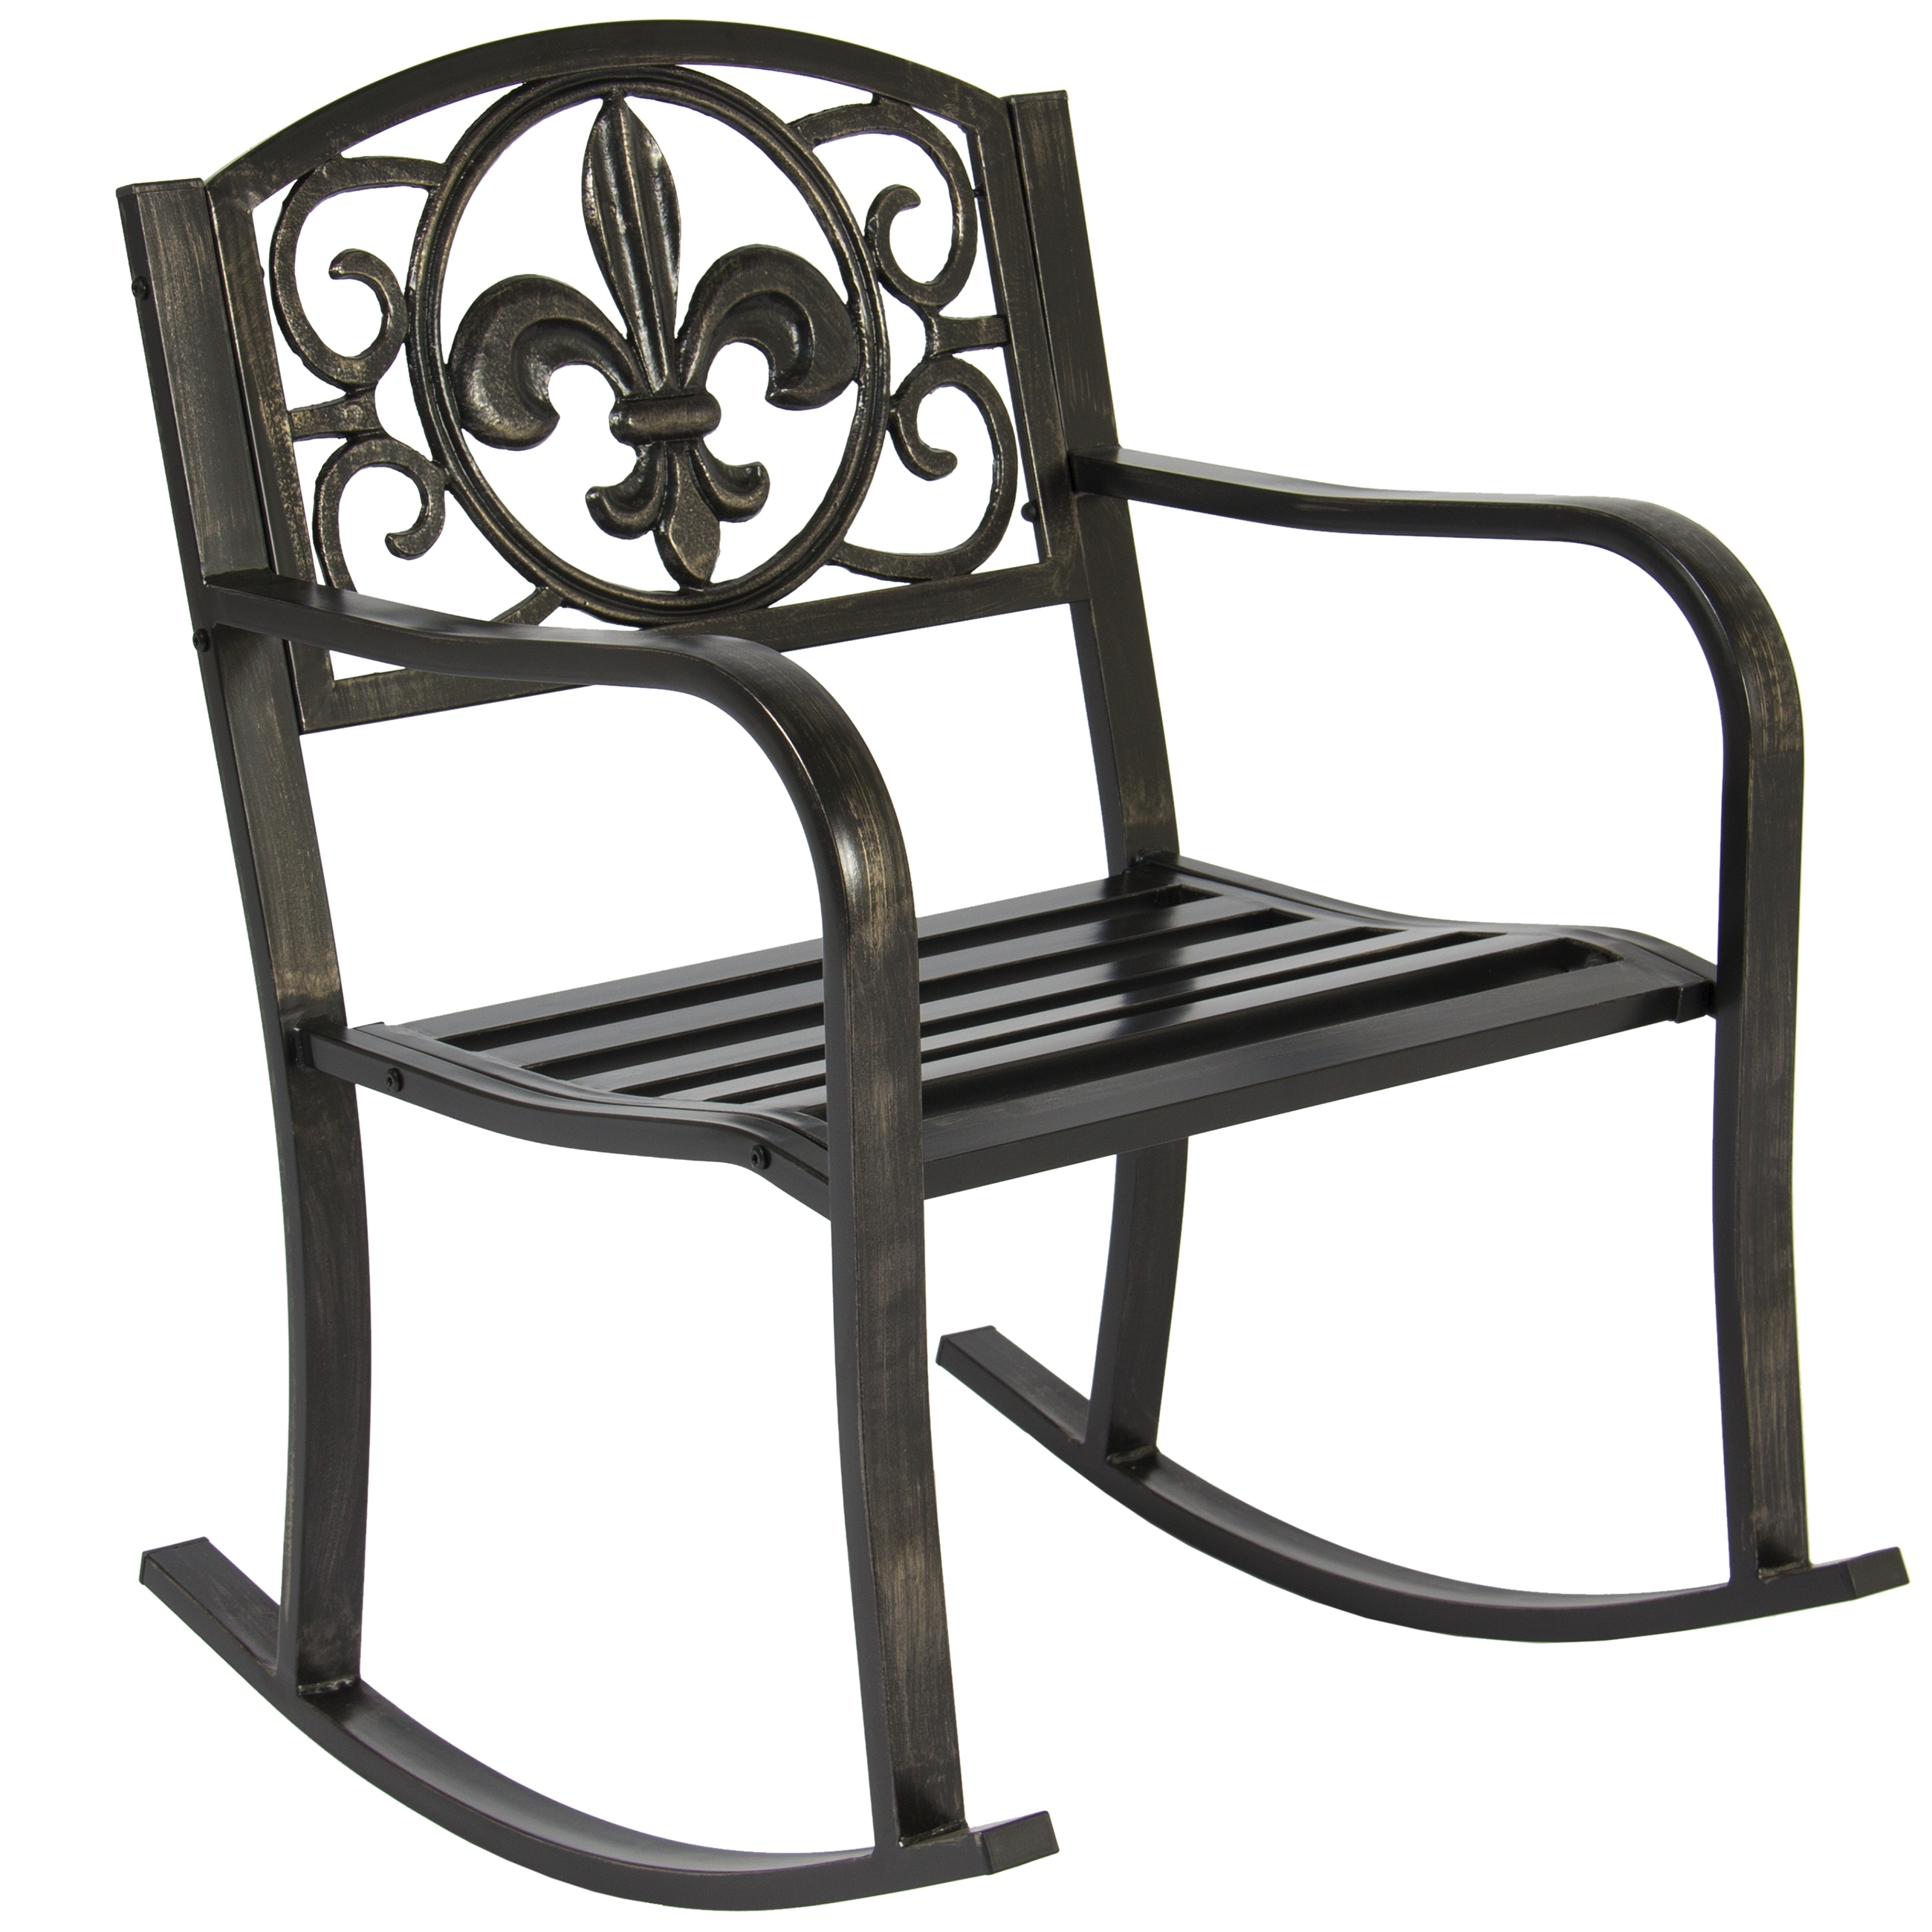 Best Choice Products Metal Rocking Chair Seat For Patio, Porch, Deck Regarding Iron Rocking Patio Chairs (View 4 of 15)